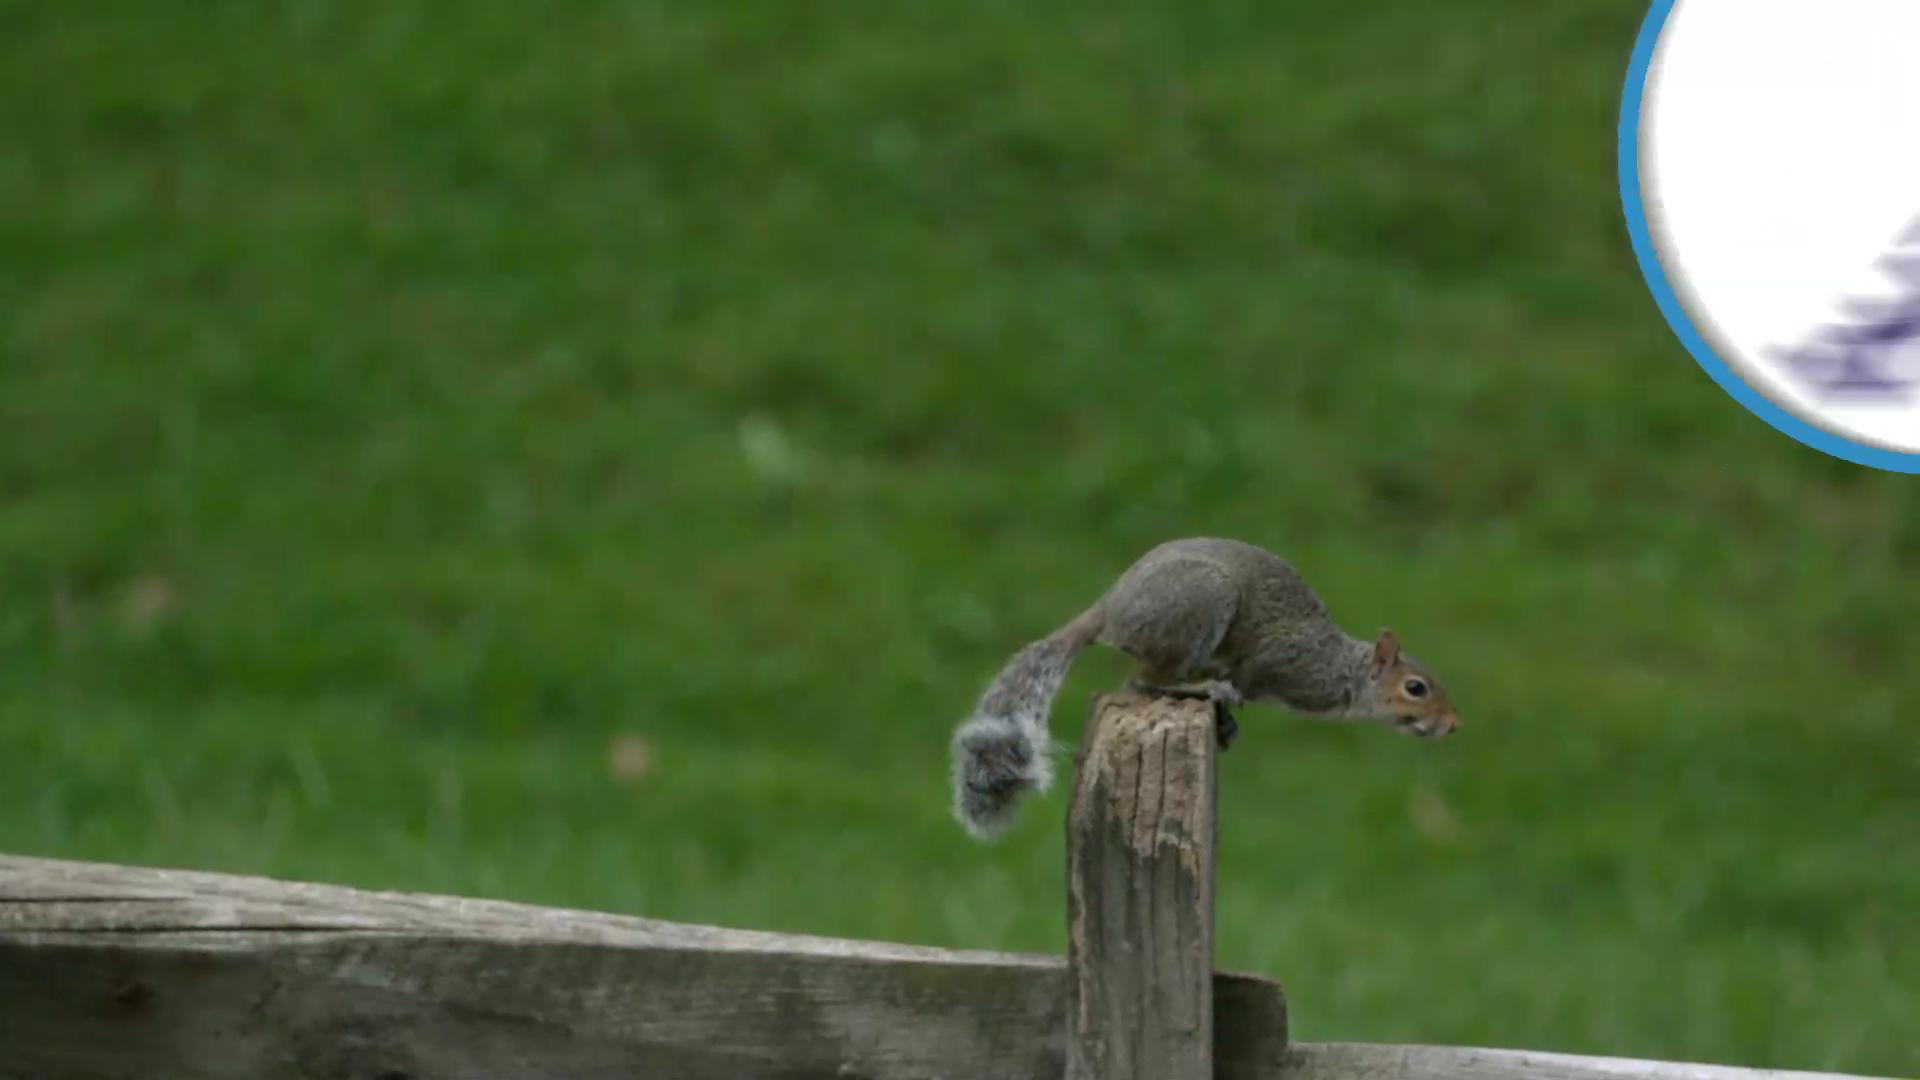 Squirrel causes power outage for 5,500 people